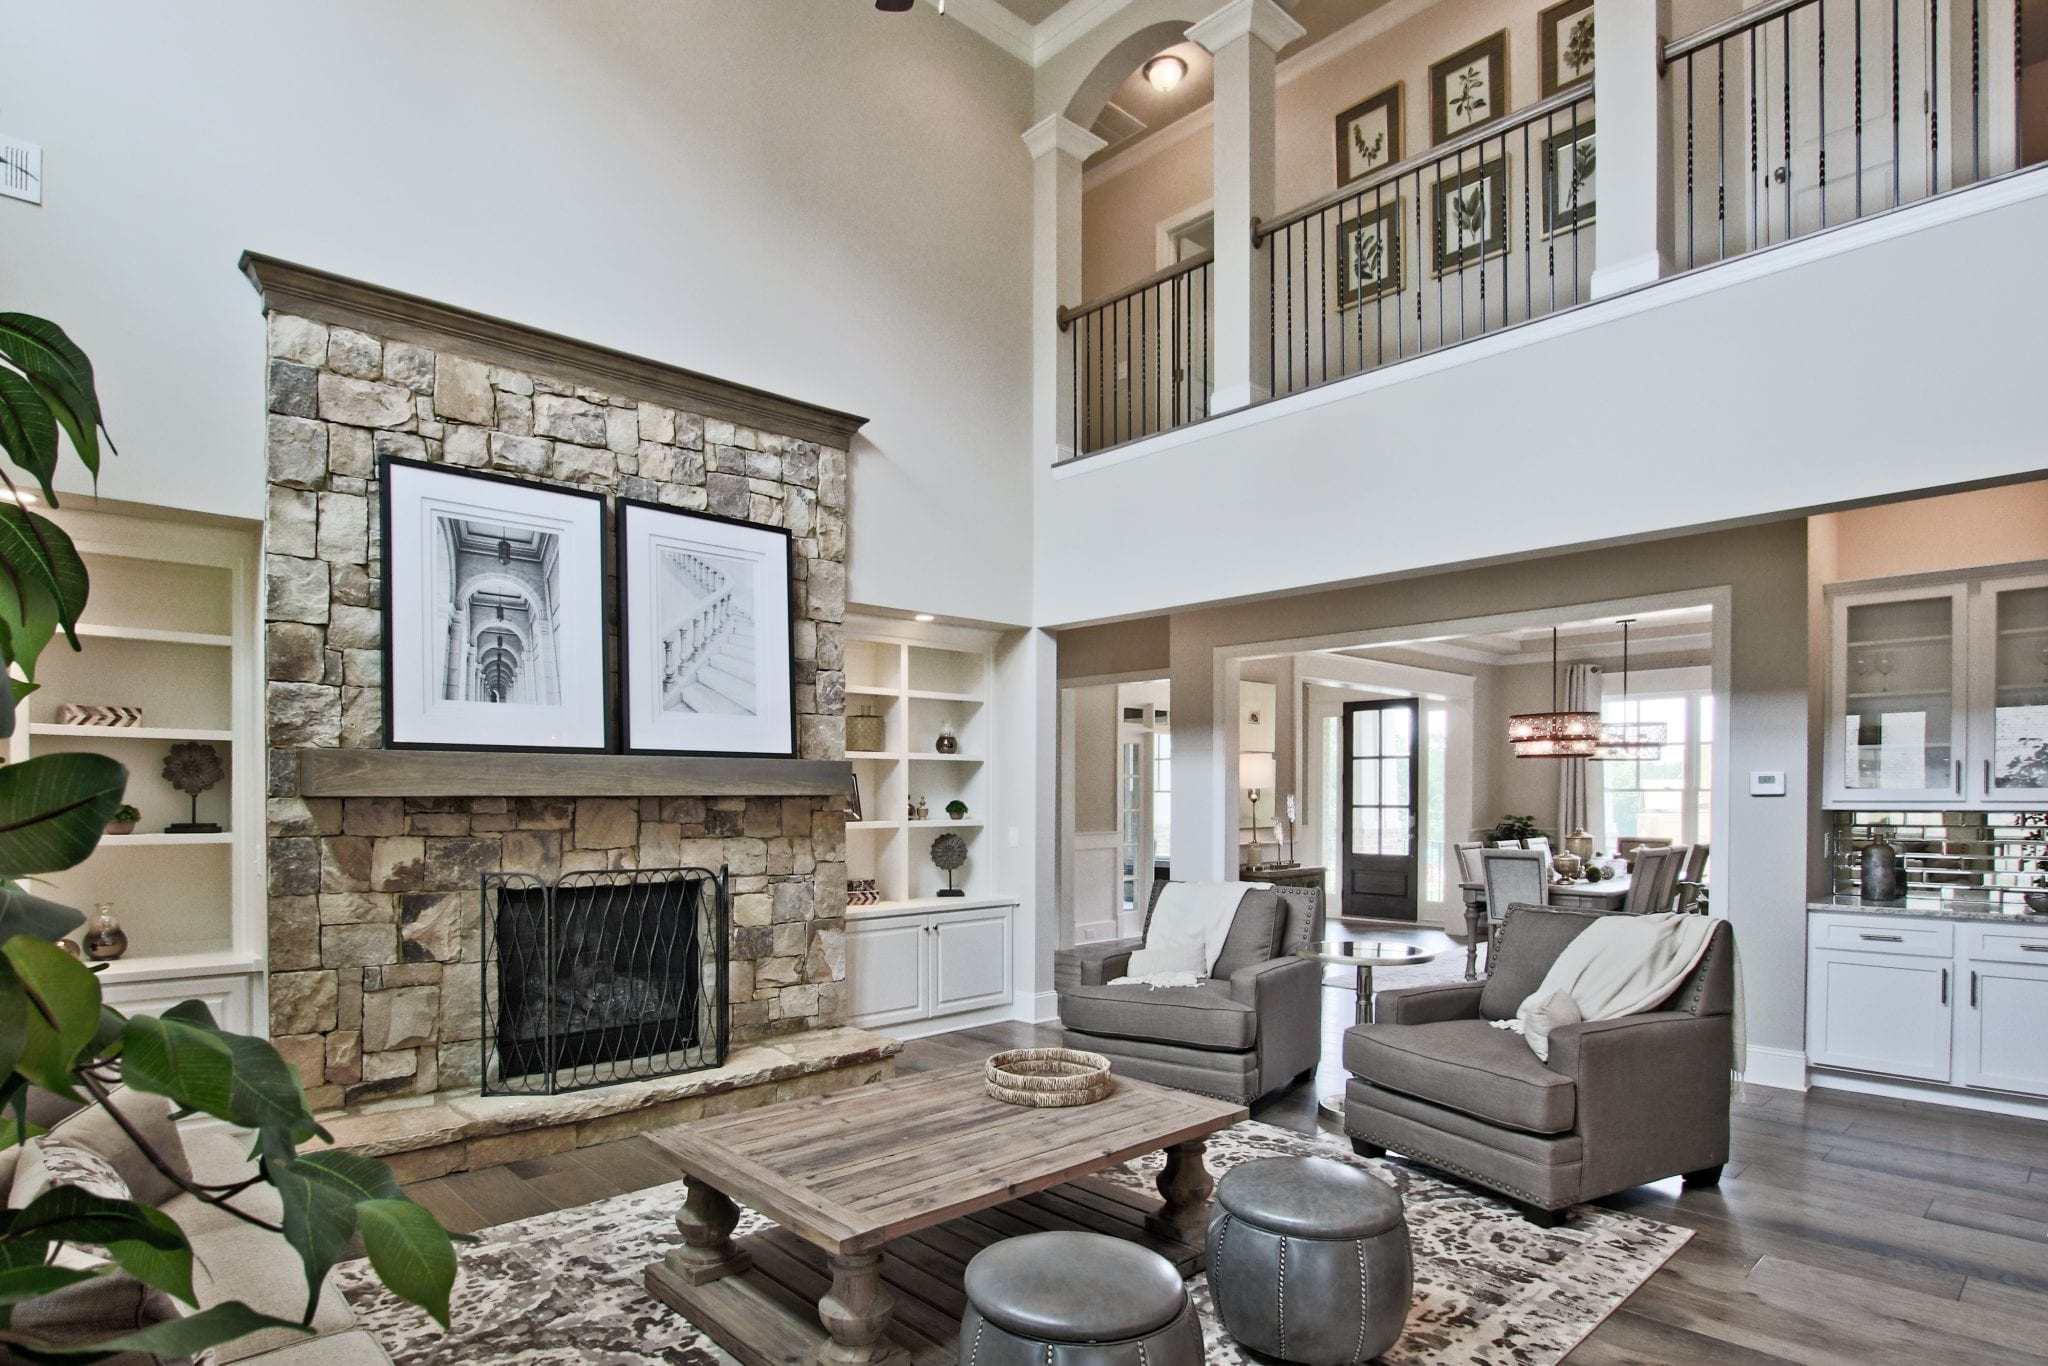 Great Rooms - 2 Story High or Just Raised with a Loft or ...